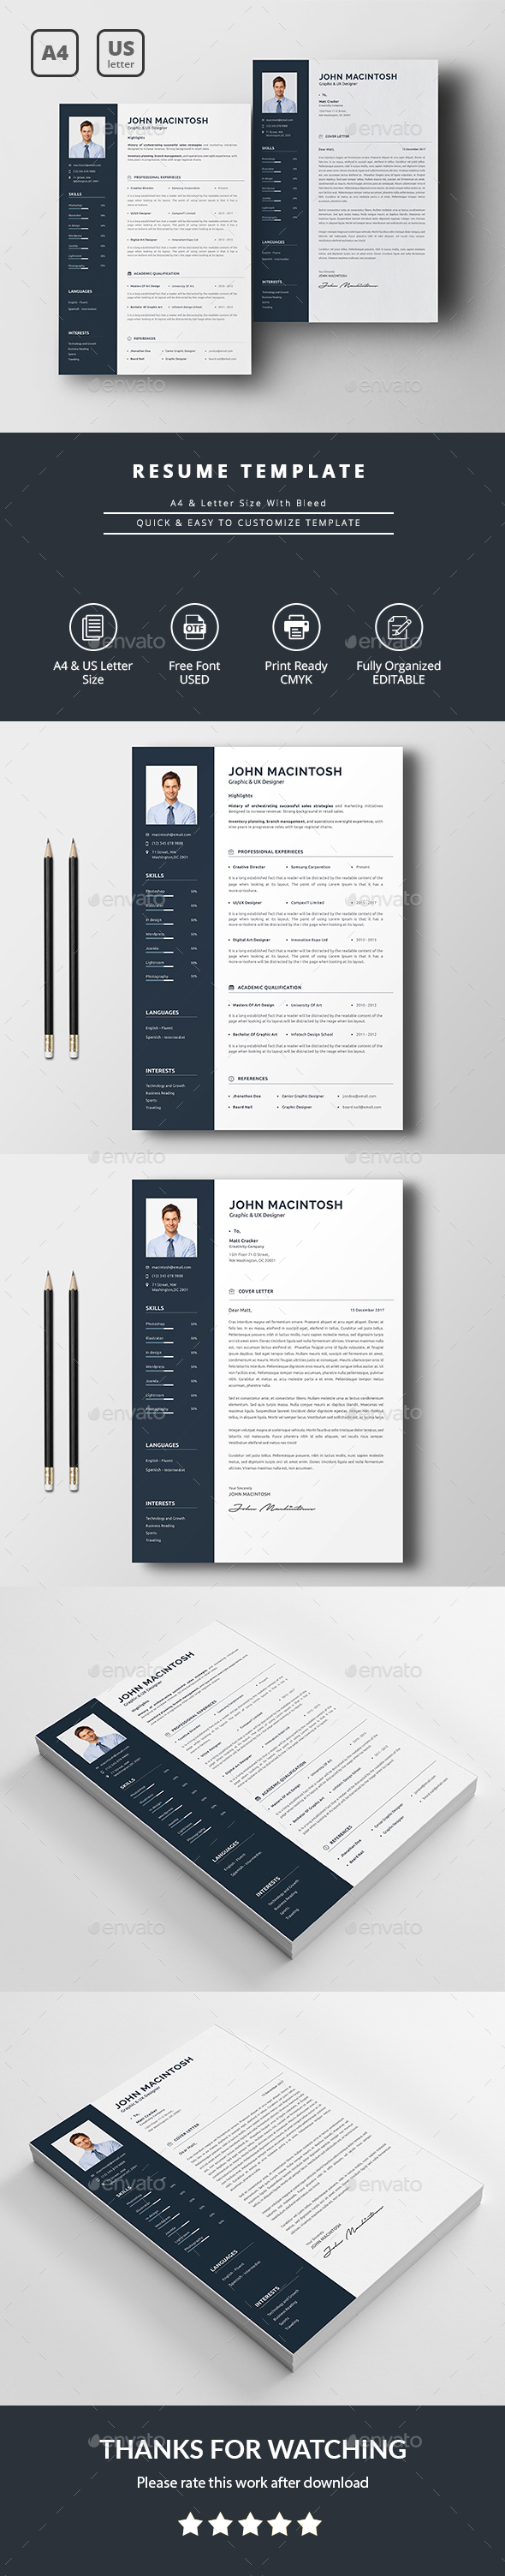 Illustrator Resume Templates Resume Template  Template Ai Illustrator And Professional Resume